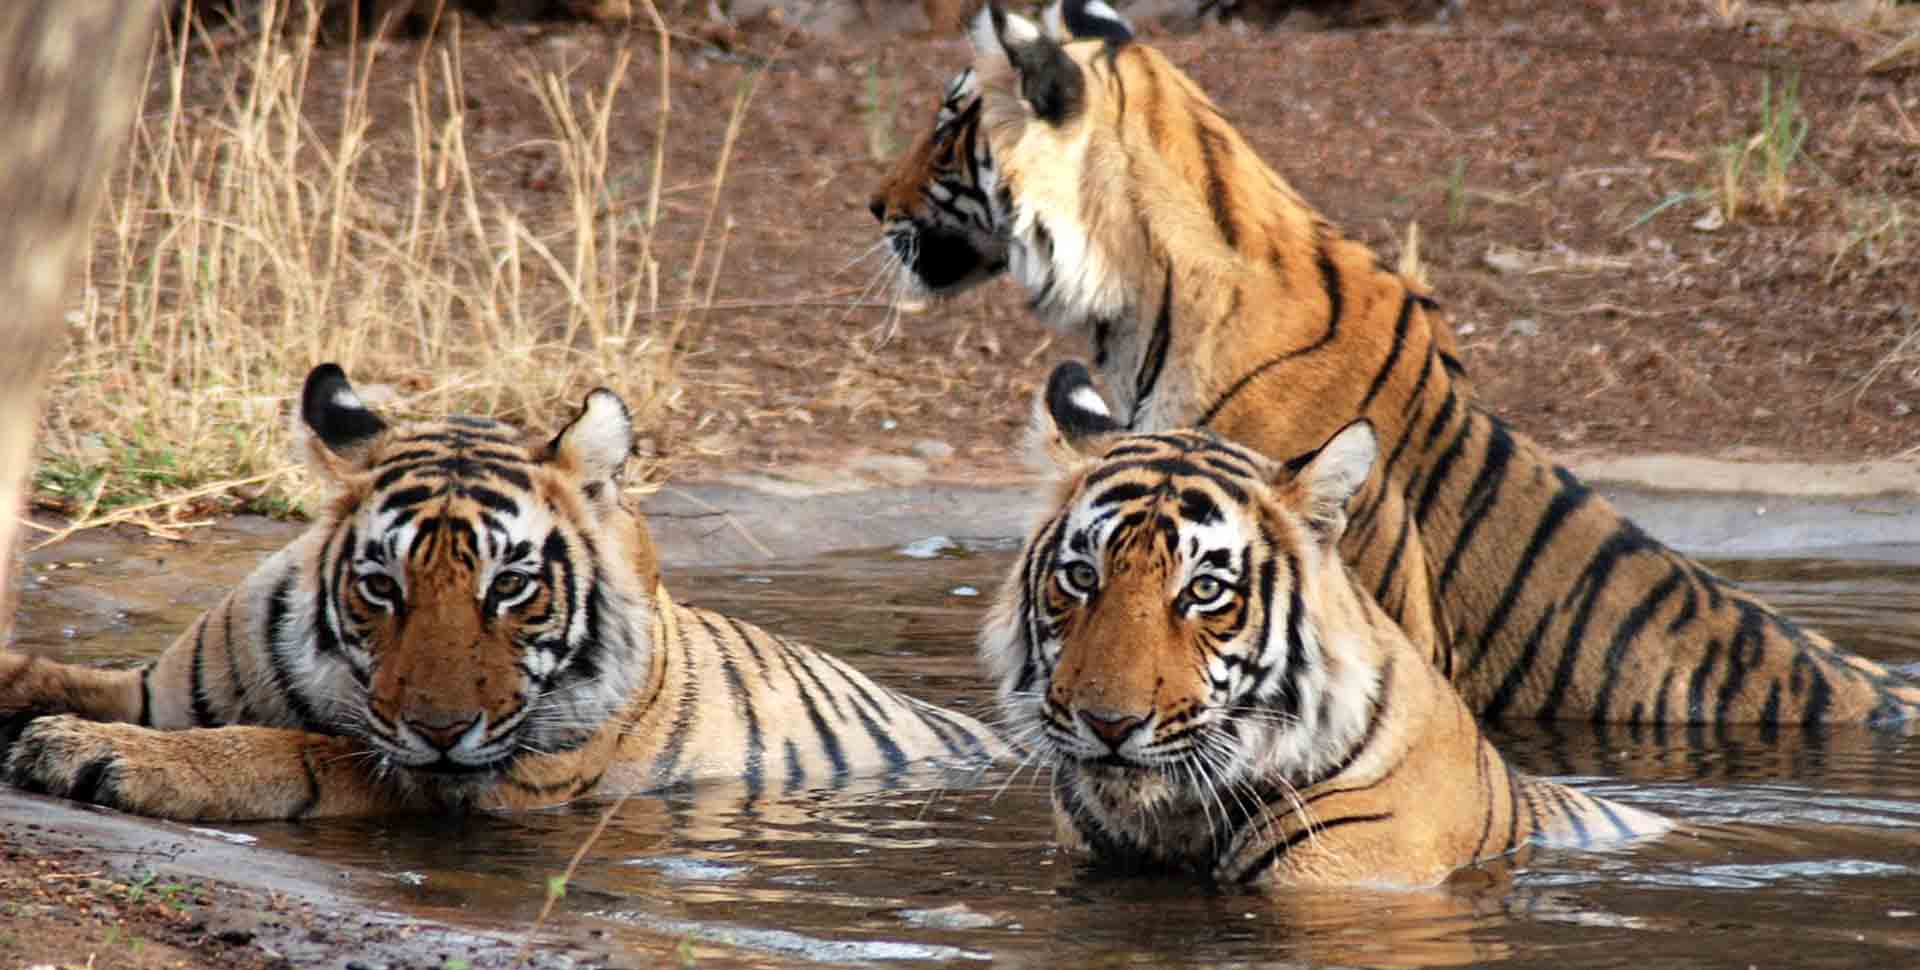 Beautiful Animals in Kanha National Park